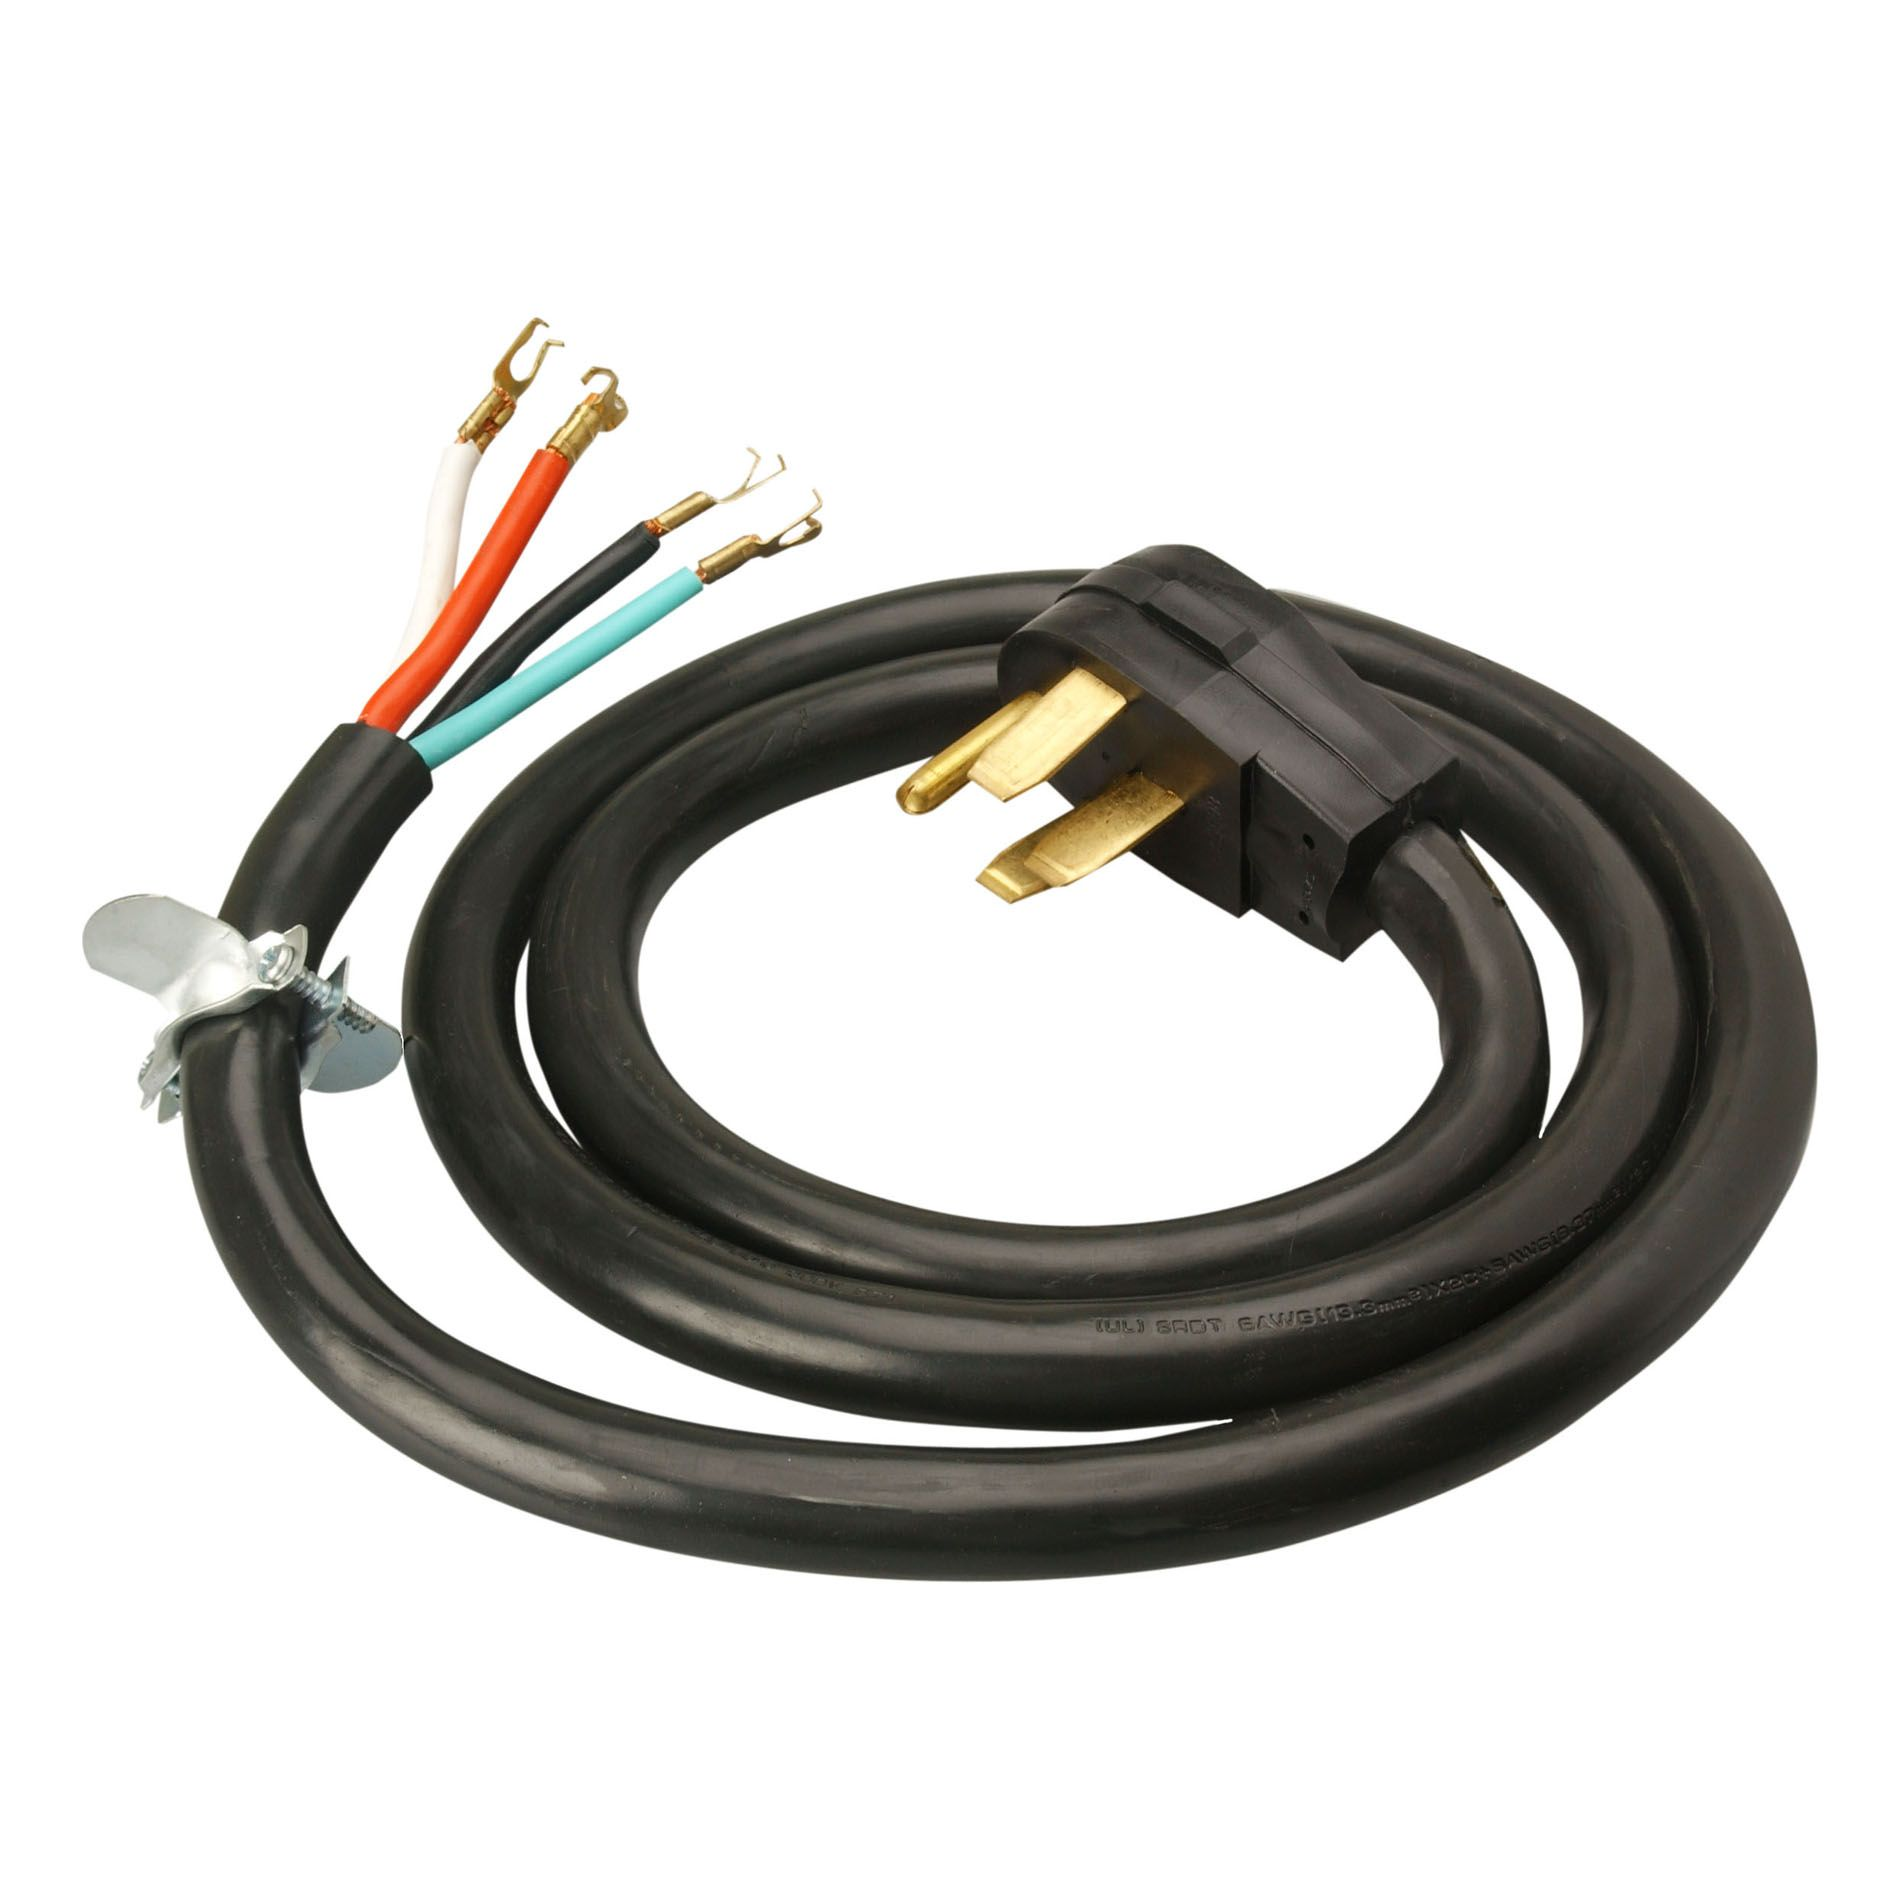 medium resolution of electricord 49626 4 wire 6 ft electric range cord sears outlet wire 6 ft electric range cord description 50 amp 4 wire 6 foot range